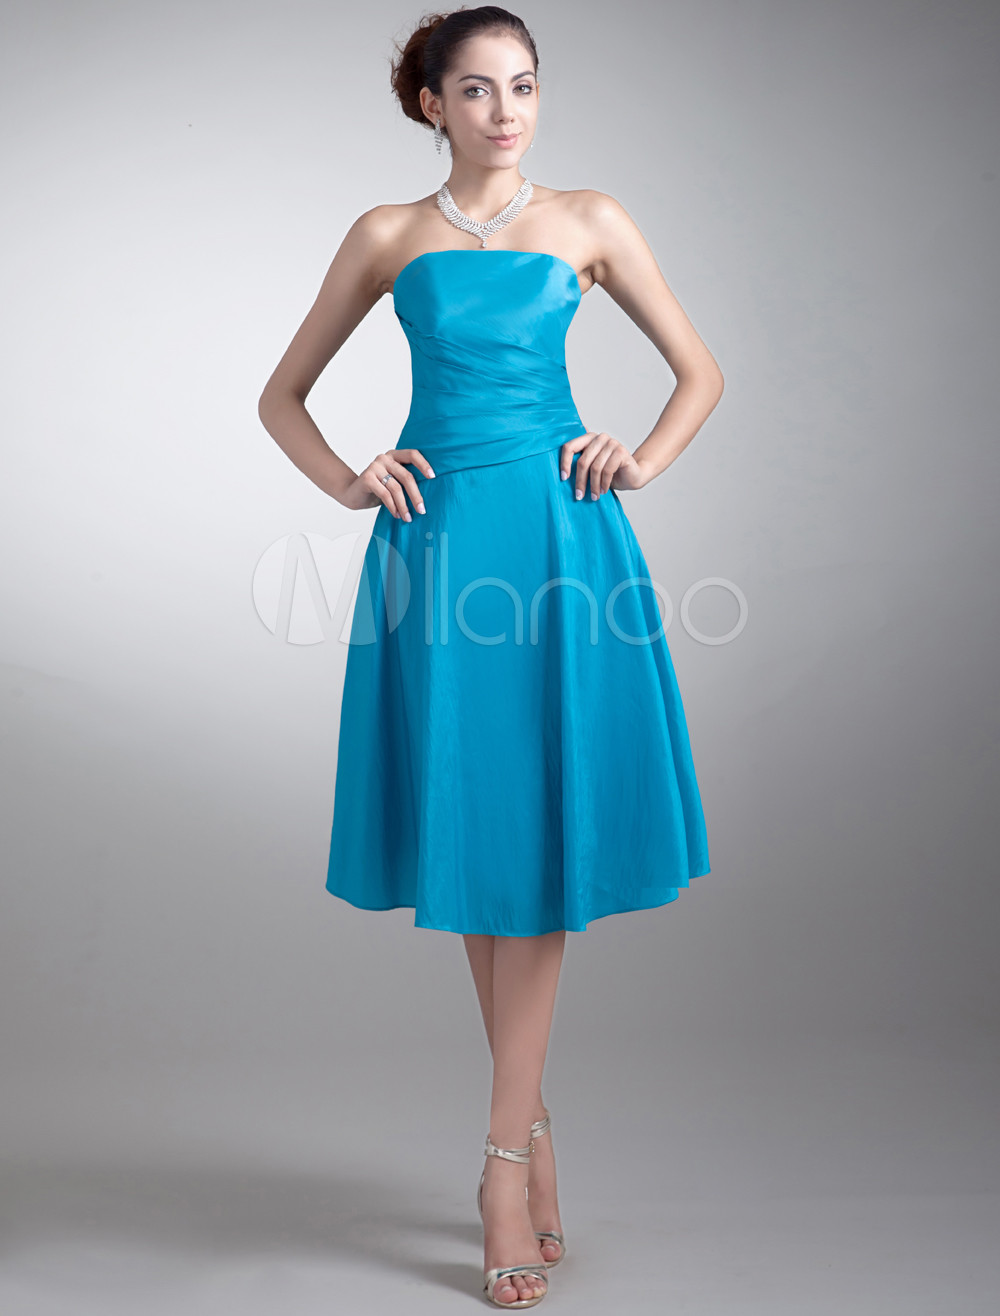 A-line Blue Taffeta Strapless Tea-Length Bridesmaid Dress For Wedding